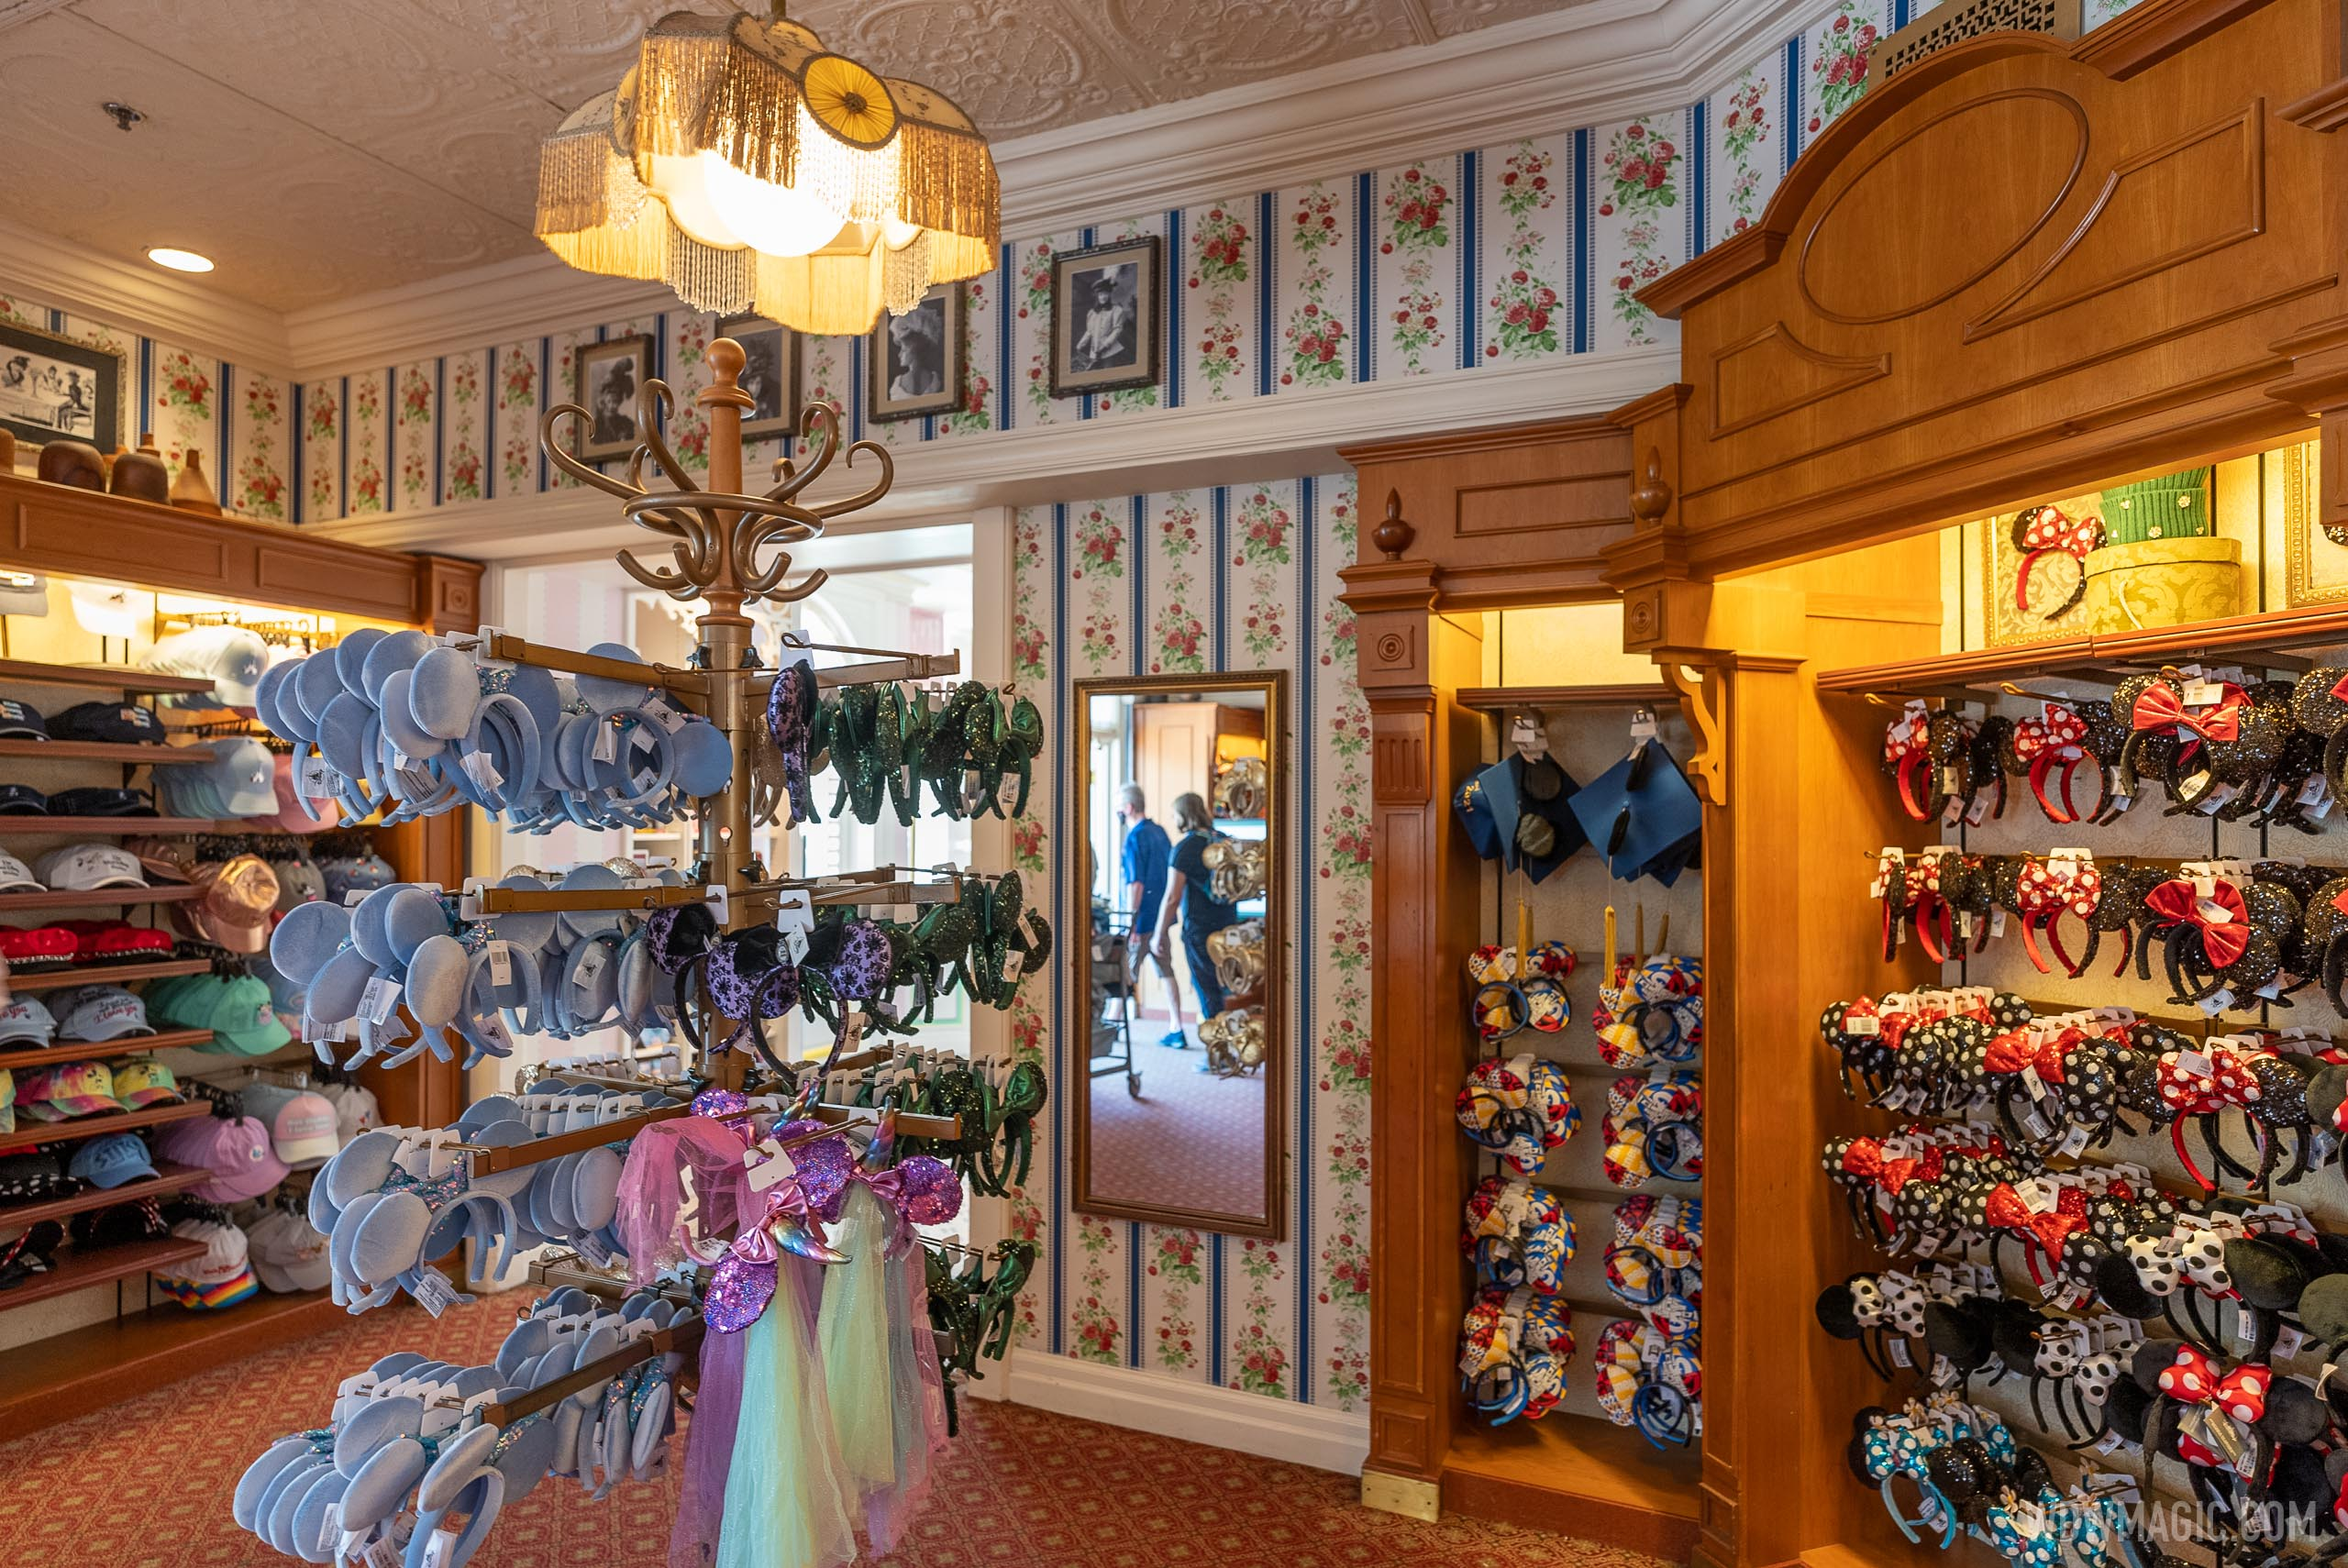 This area of The Chapeau is closest to Main Street Confectionery